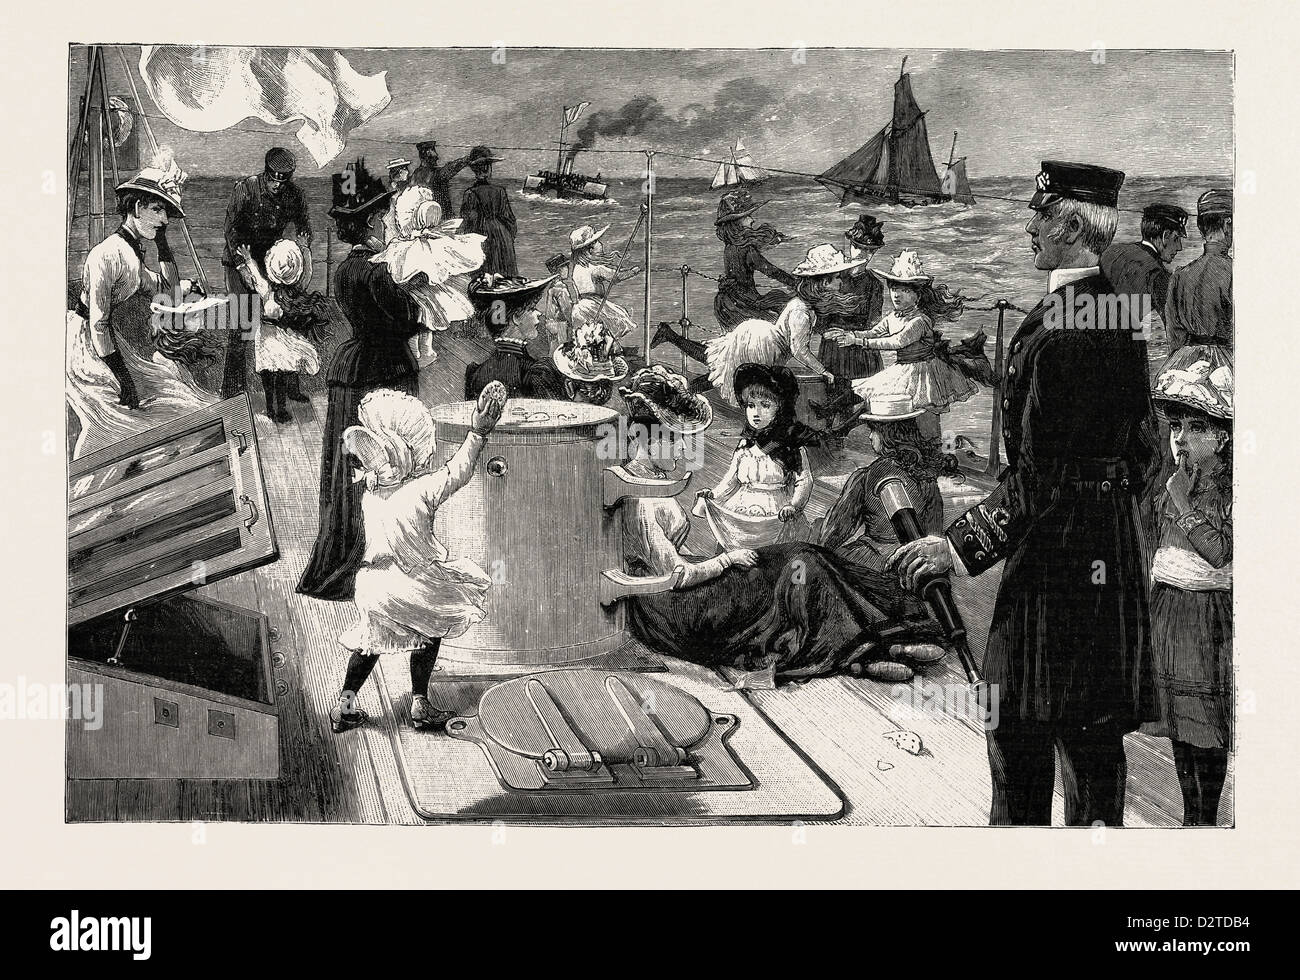 AN INVASION OF A MAN-OF-WAR: THE NAVAL MANOEUVRES: VISITING DAY - Stock Image